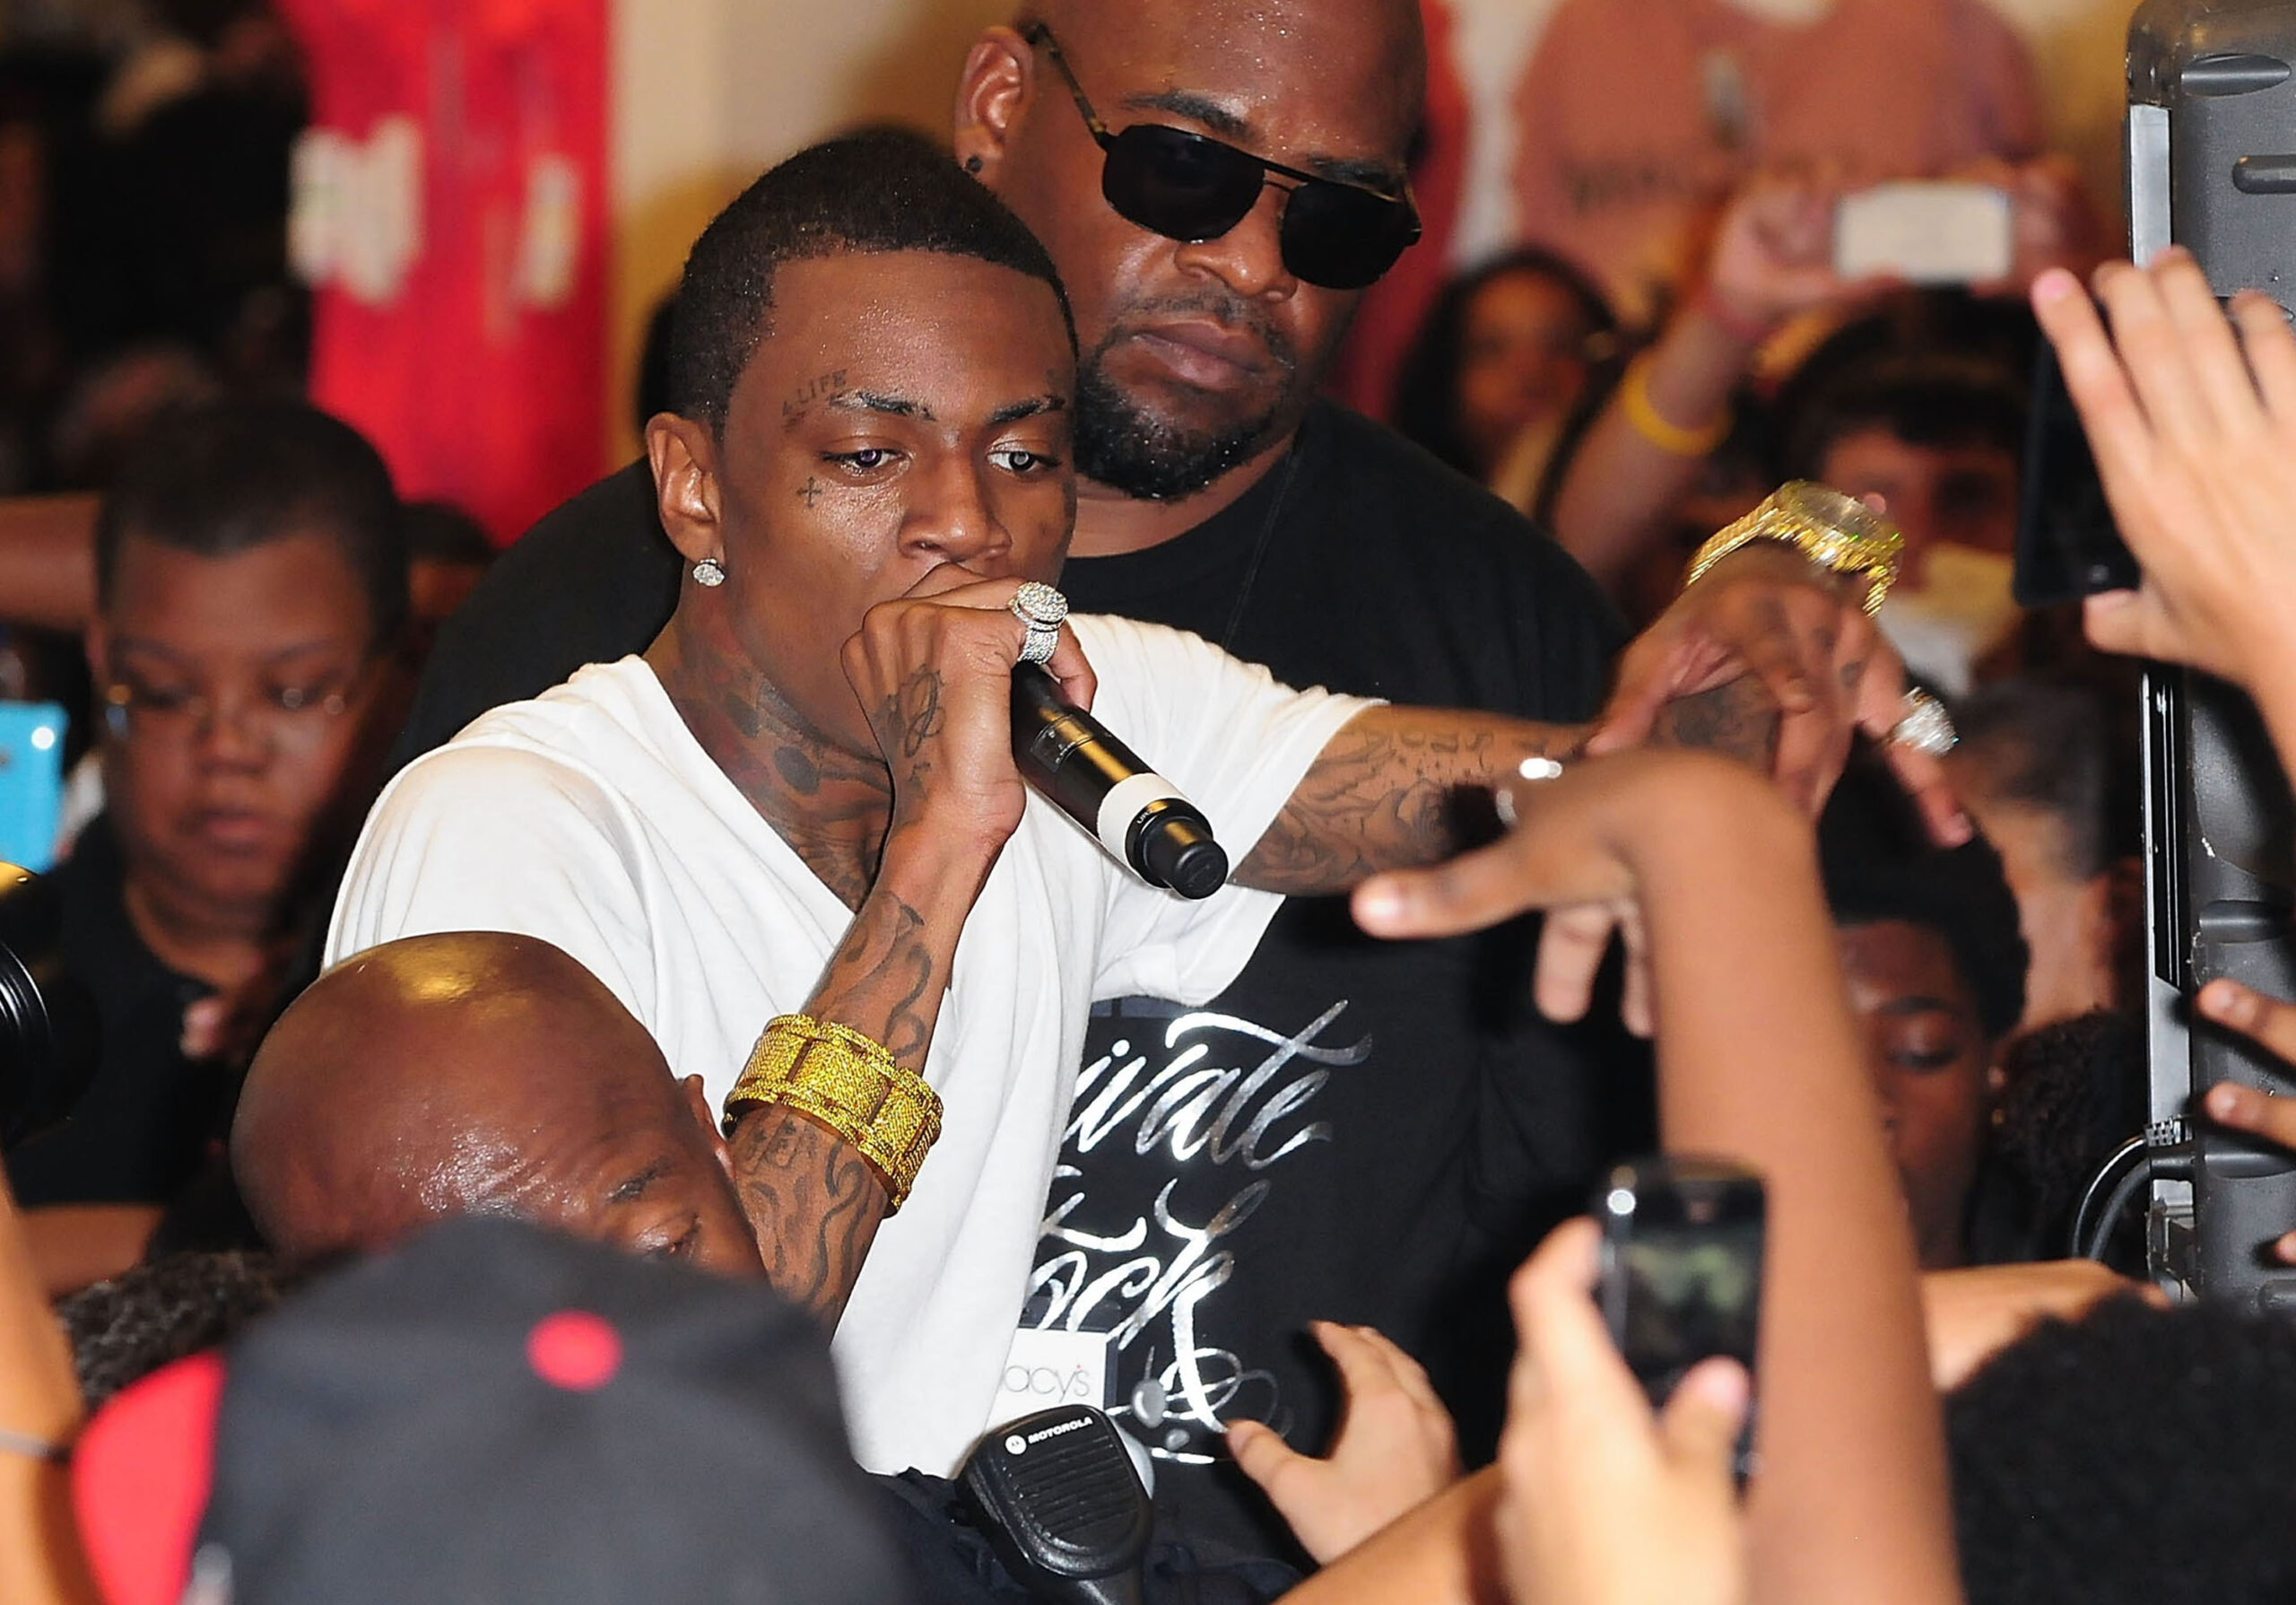 Soulja Boy's Manager Miami Mike Thanks Hospital After Surviving COVID-19